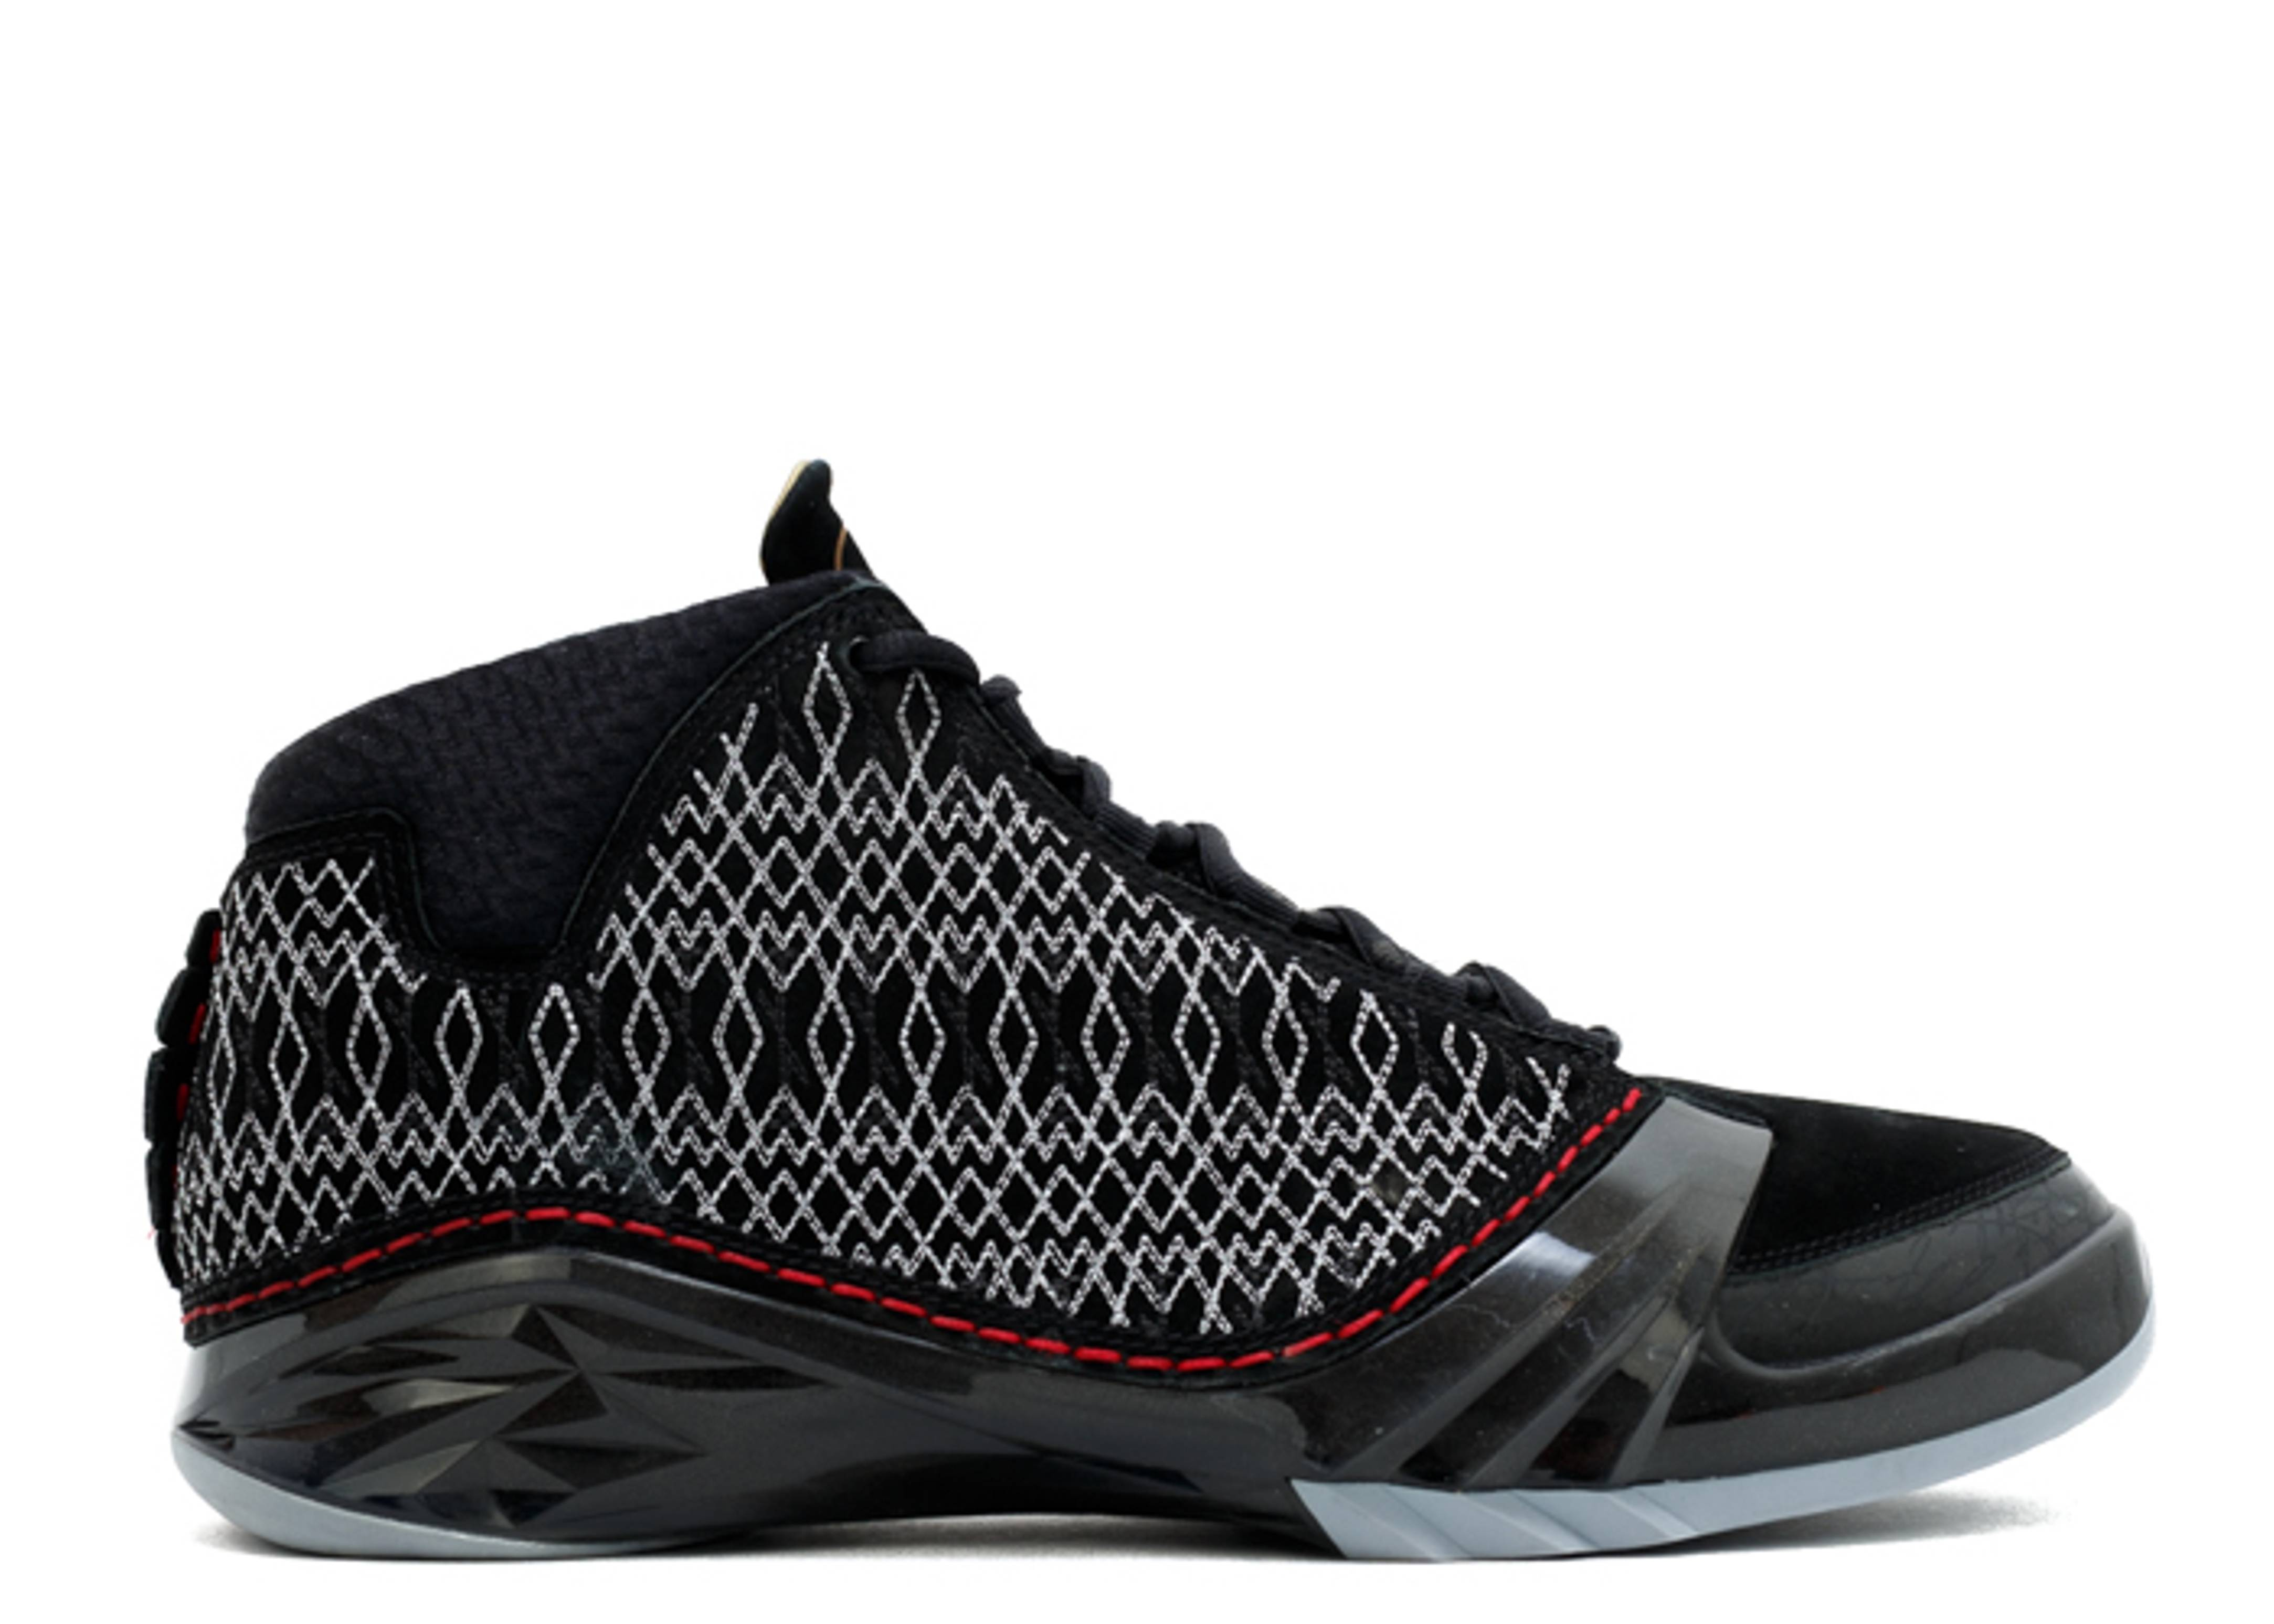 63598656283-air-jordan-23-black-varsity-red-stealth-010701_1.jpg